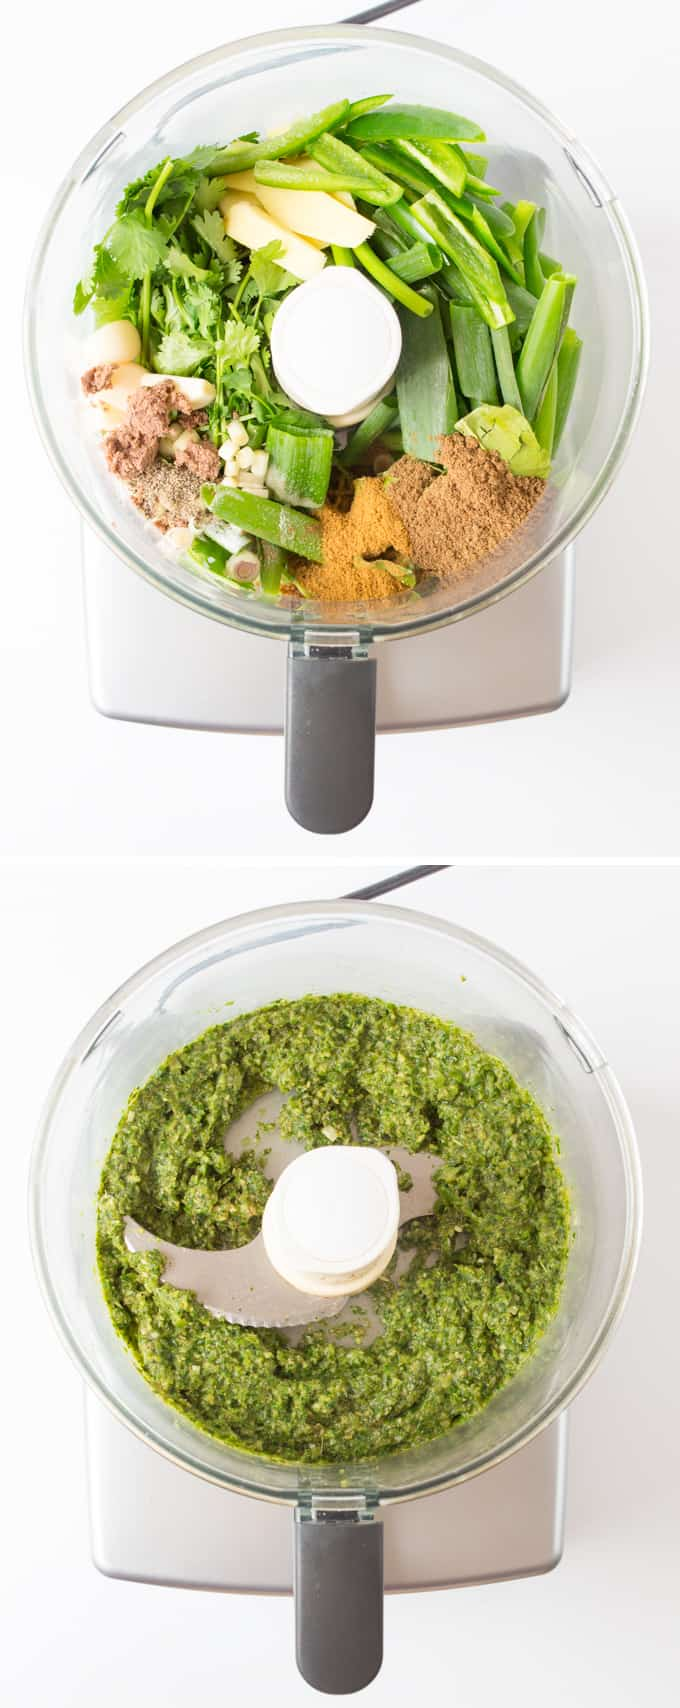 Process of making Thai Green Curry Paste in a blender